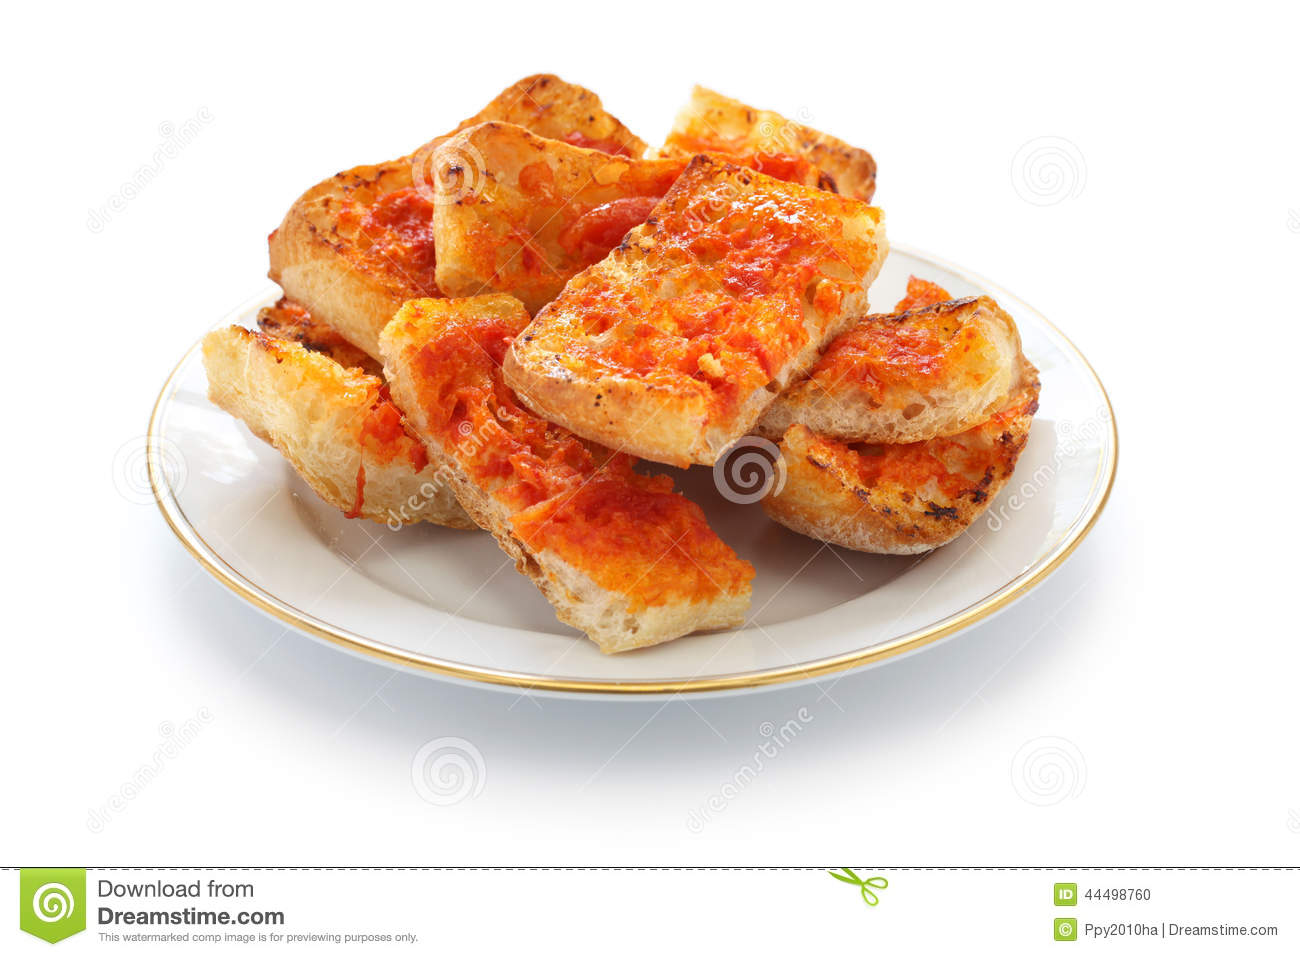 Pan Con Tomate, Spanish Tomato Bread Stock Photo - Image: 44498760